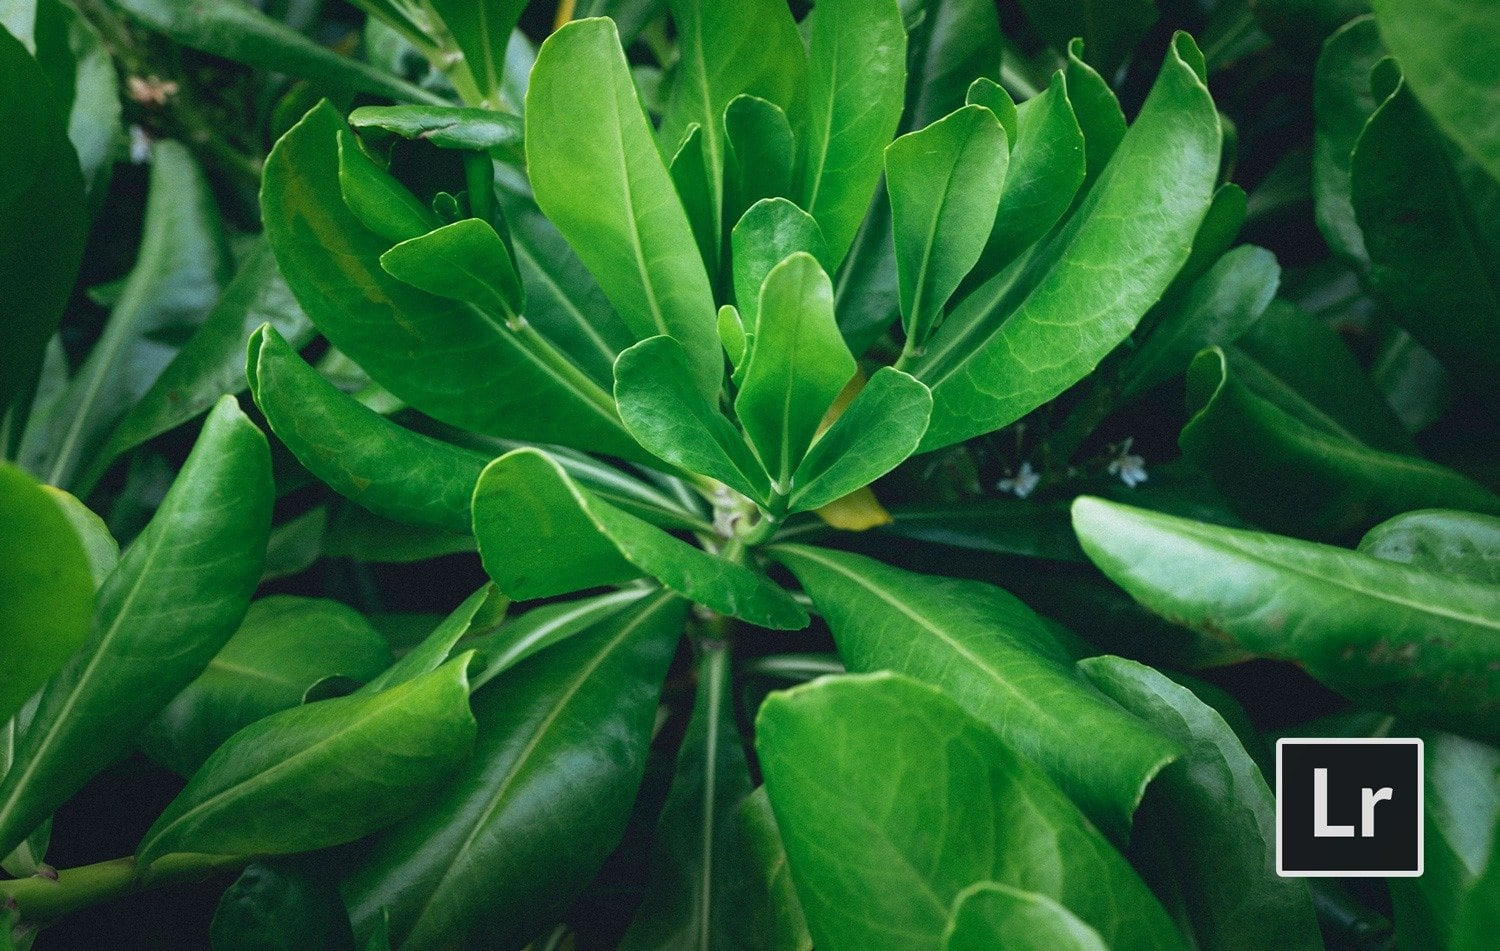 Free-Lightroom-Preset-Banana-Leaf-Before-and-After-Presetpro.com